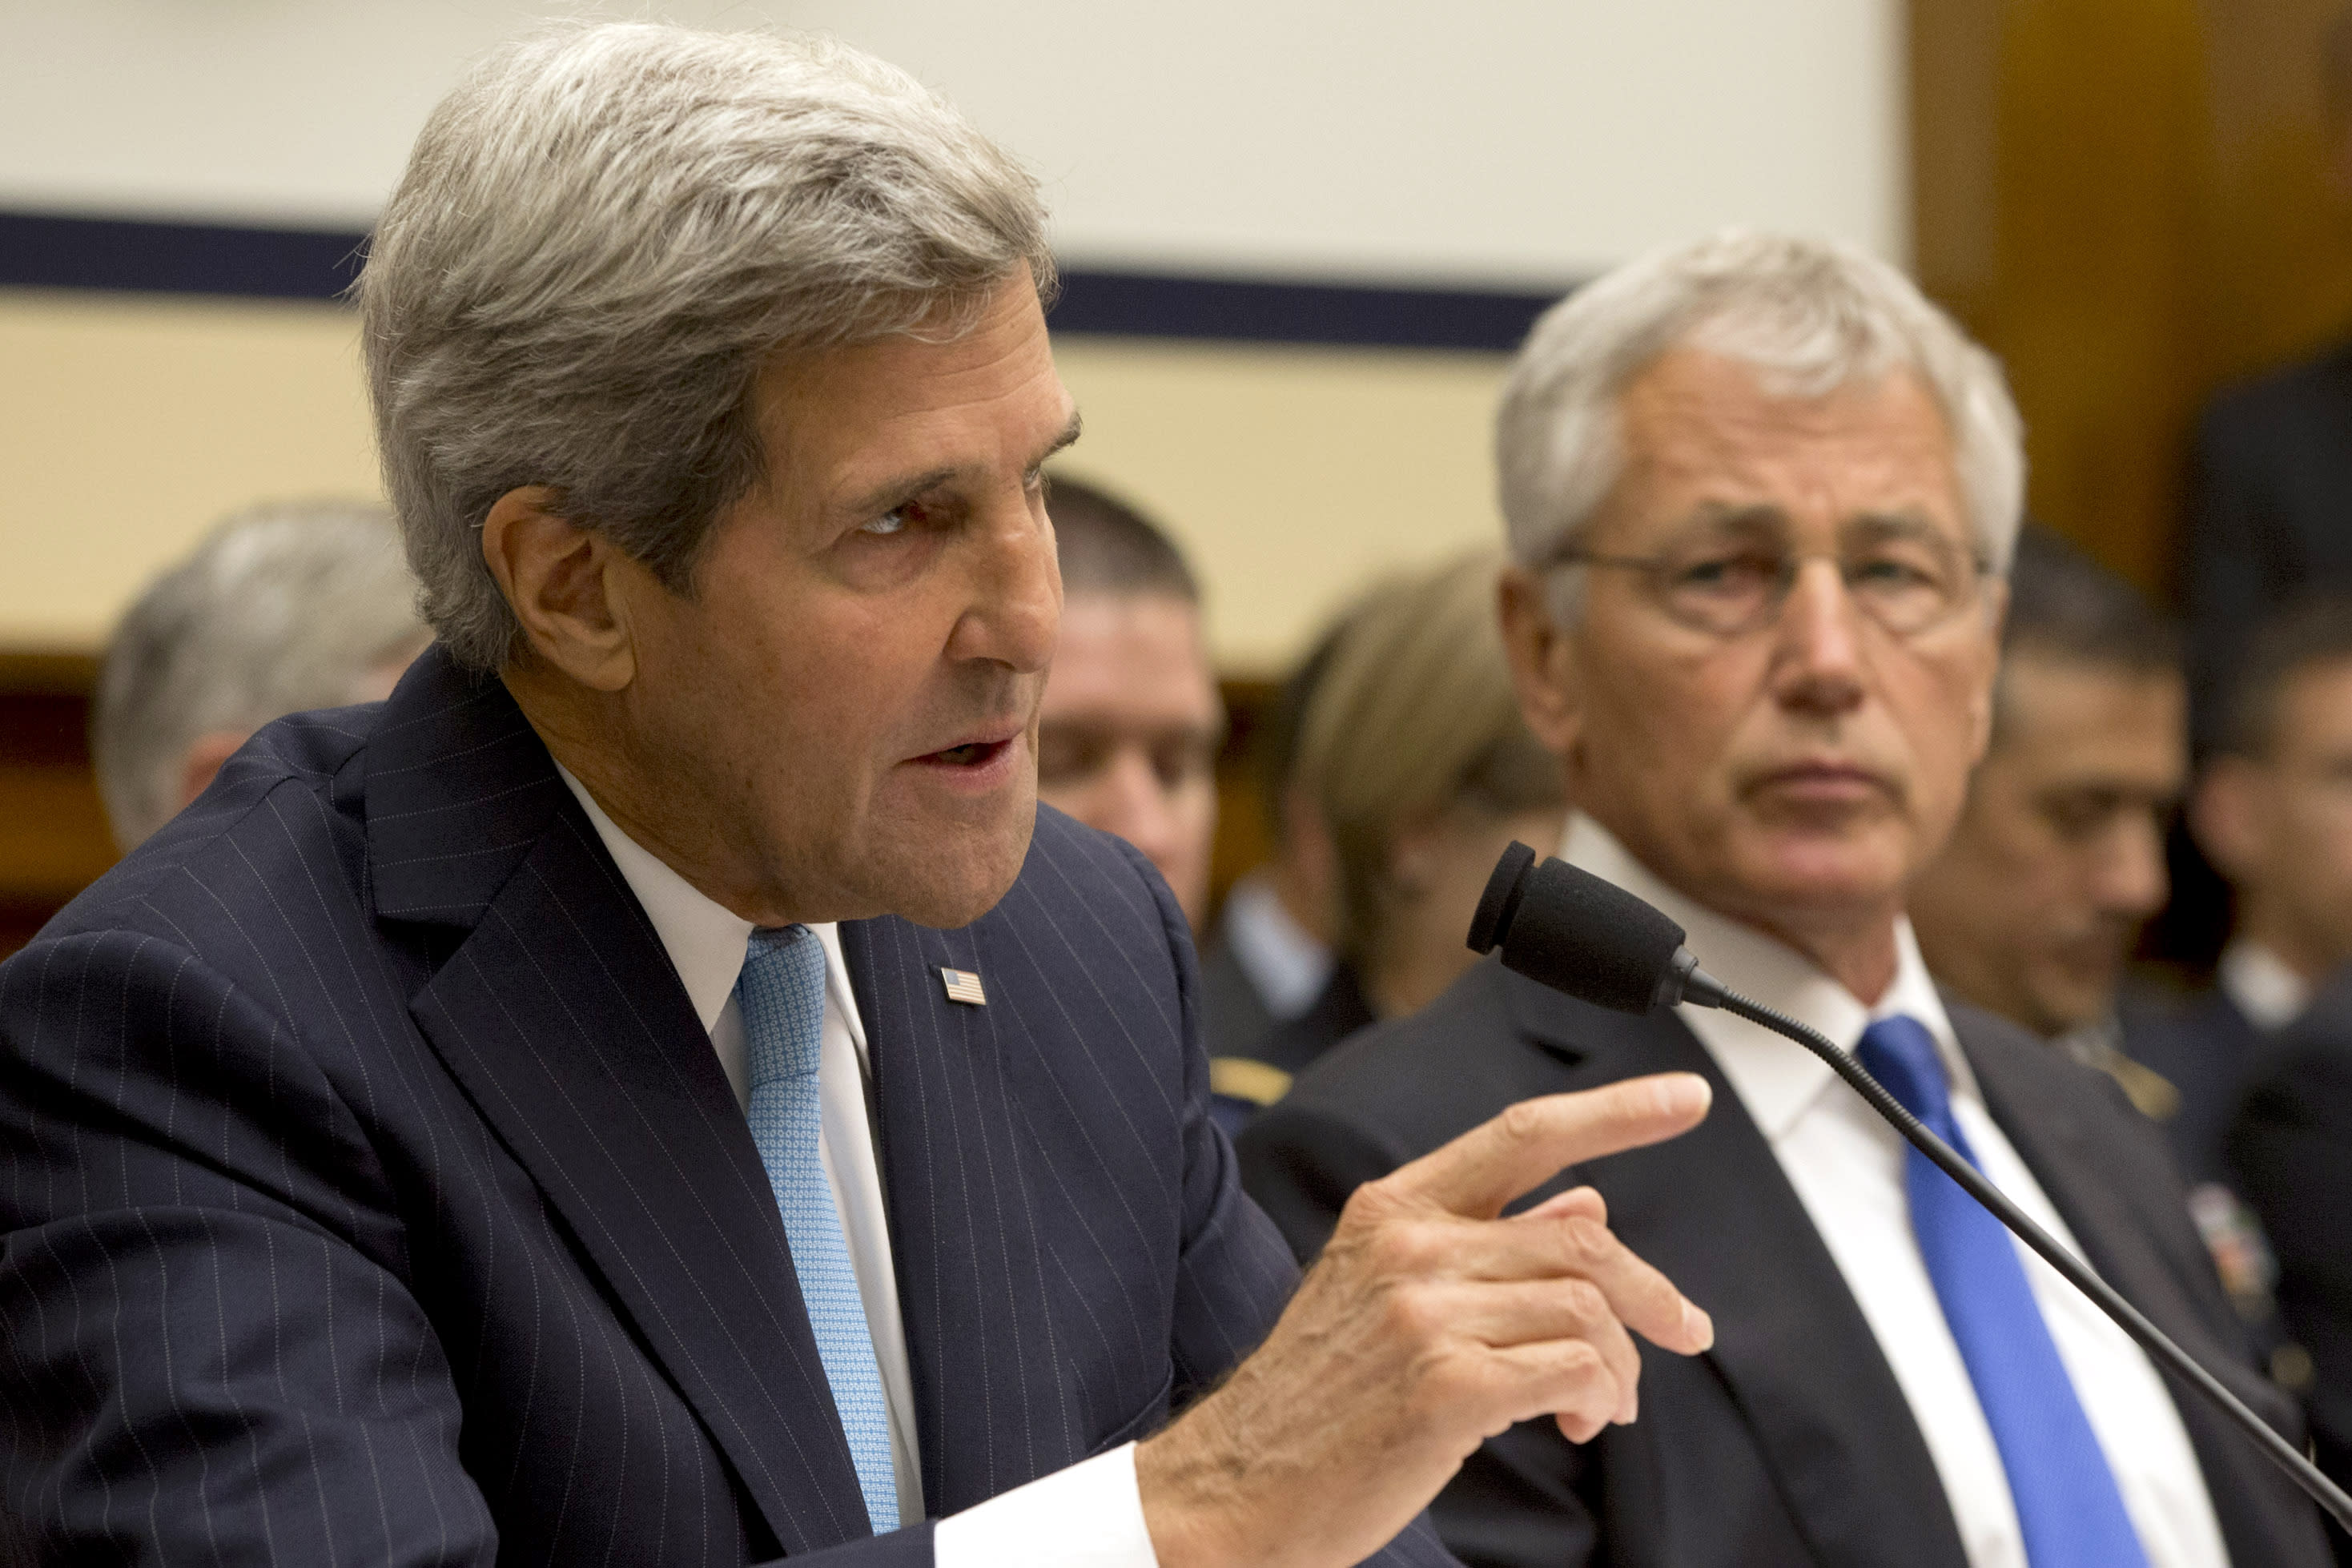 Defense Secretary Chuck Hagel listens at right as Secretary of State John Kerry testifies on Capitol Hill in Washington, Tuesday, Sept. 10, 2013, before the House Armed Services Committee hearing on the proposed authorization to use military force in Syria. (AP Photo/Jacquelyn Martin)